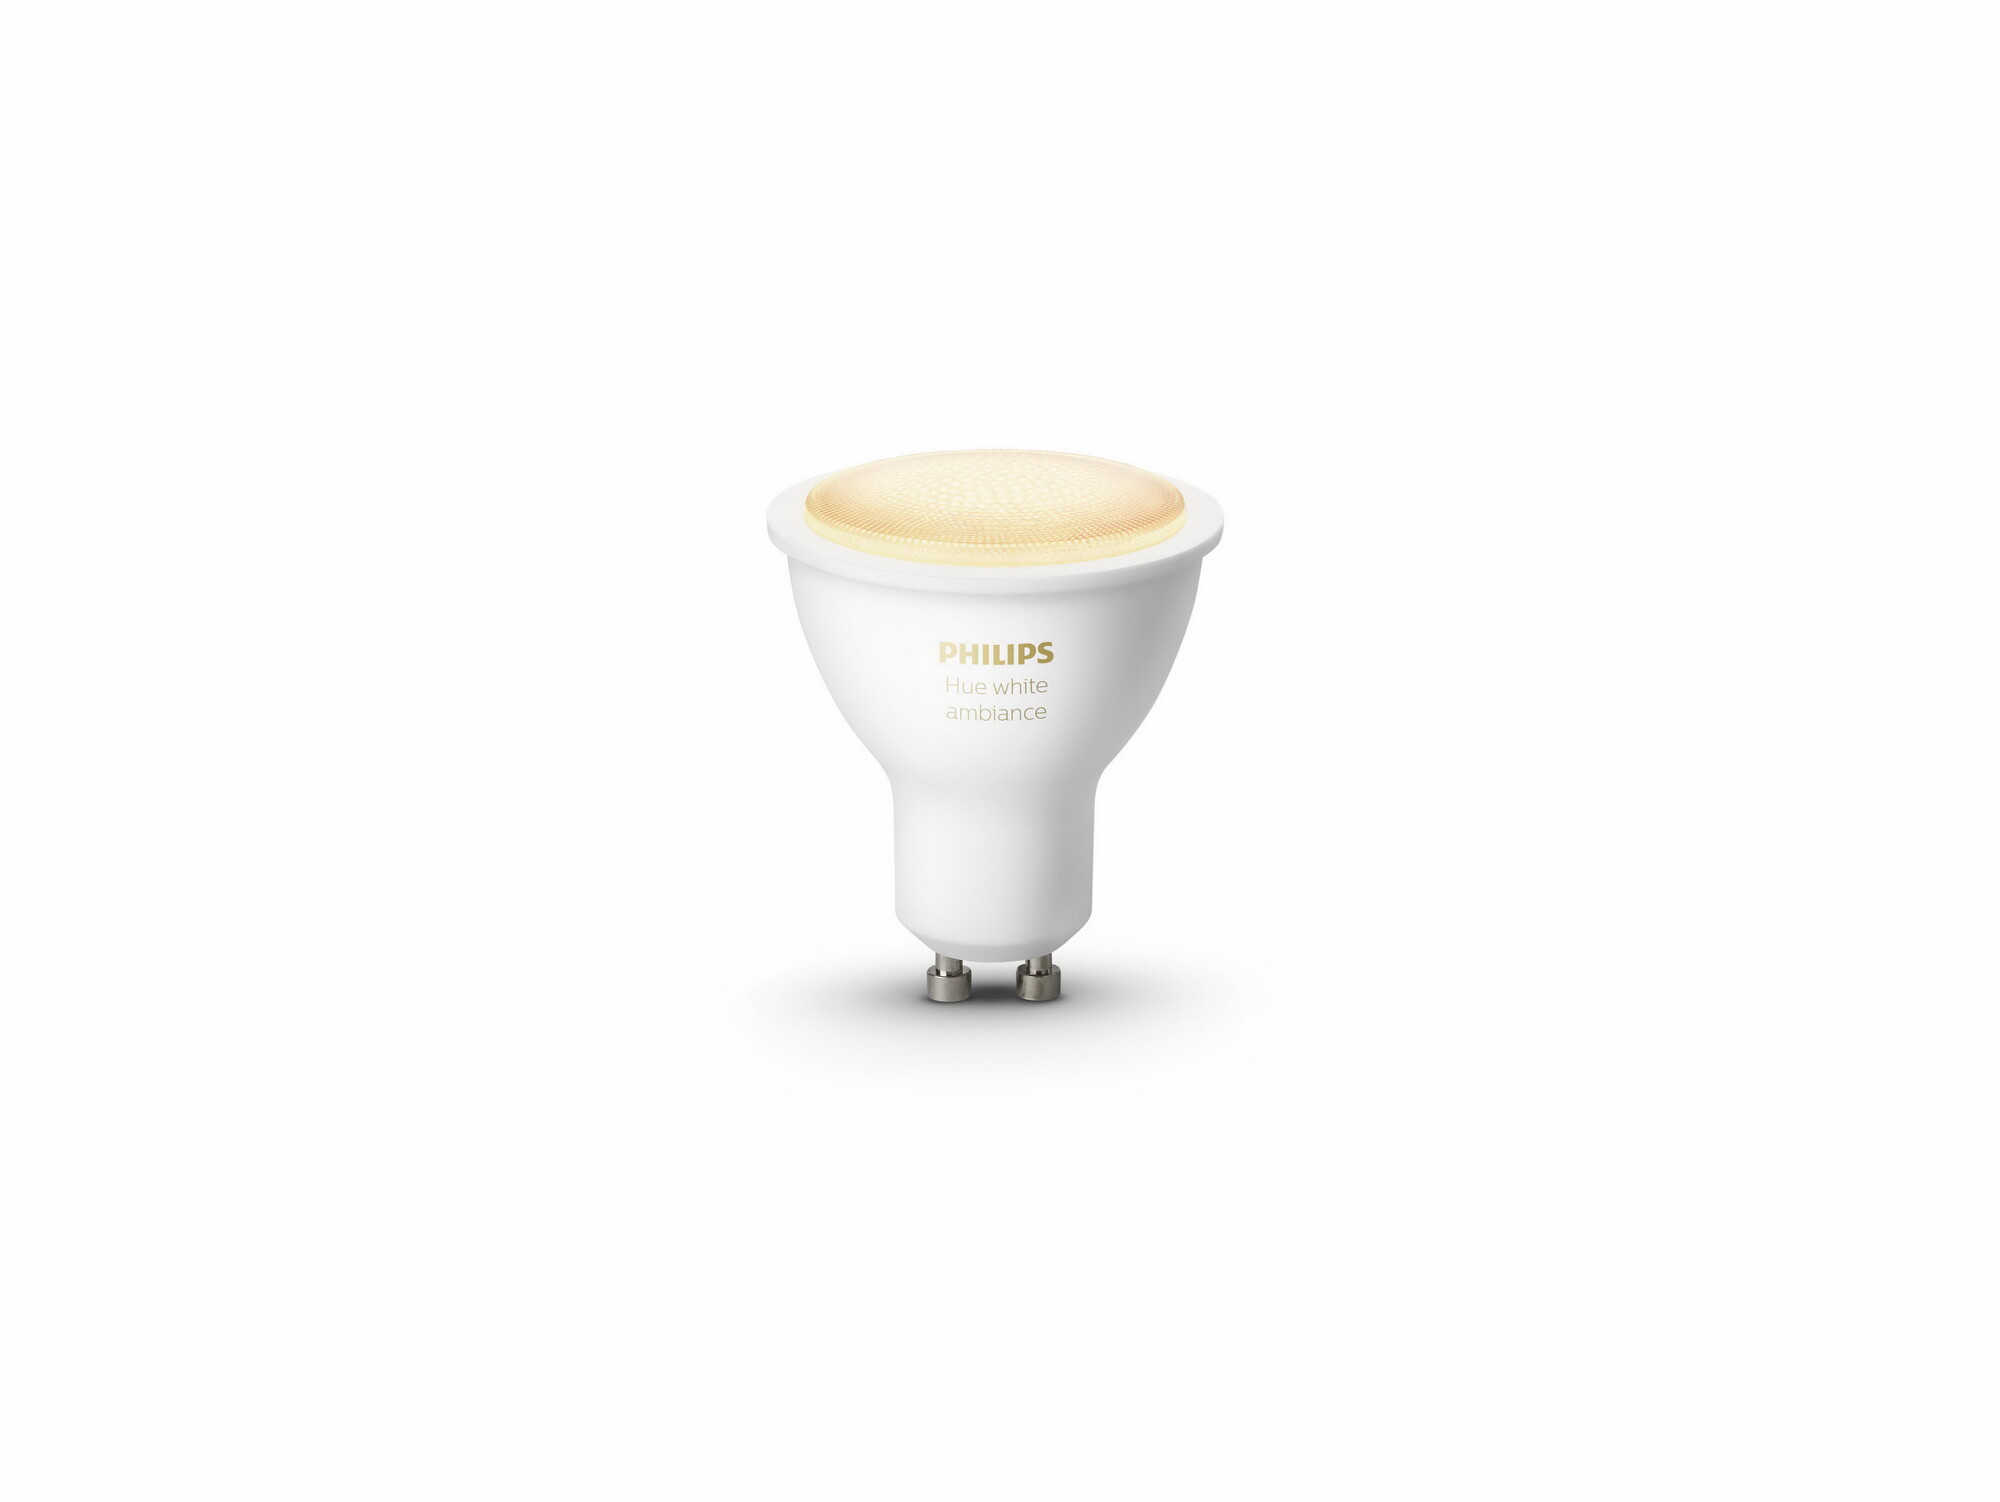 Philips HUE White ambiance GU10 5W 350lm 2200K-6500K Spot Frosted